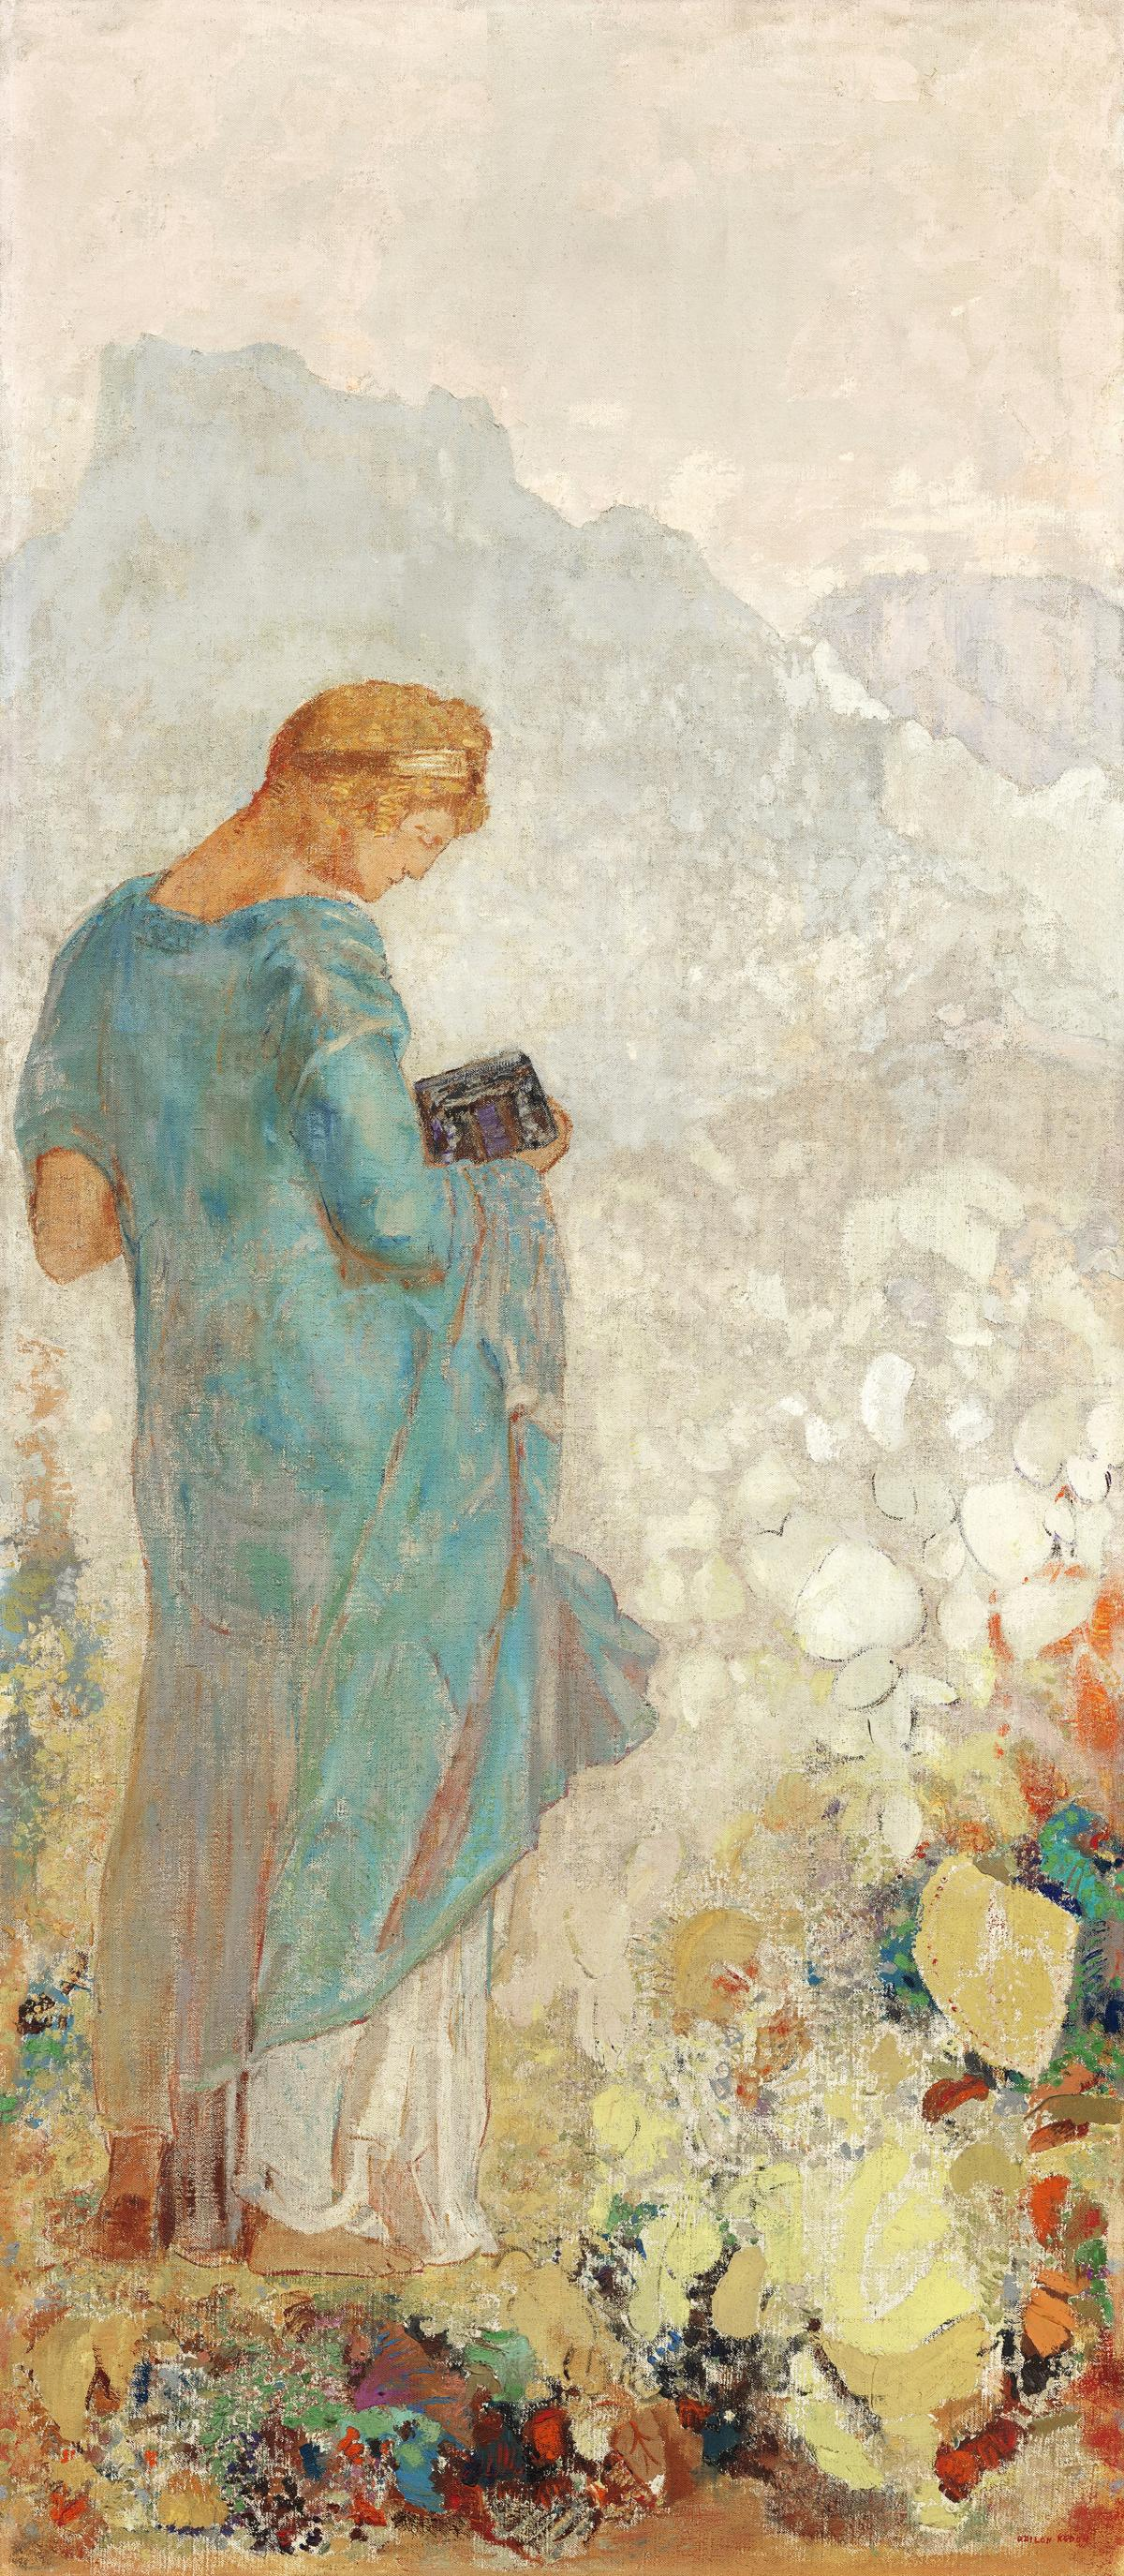 Pandora (1910—1912) by Odilon Redon. Original from the National Gallery of Art.